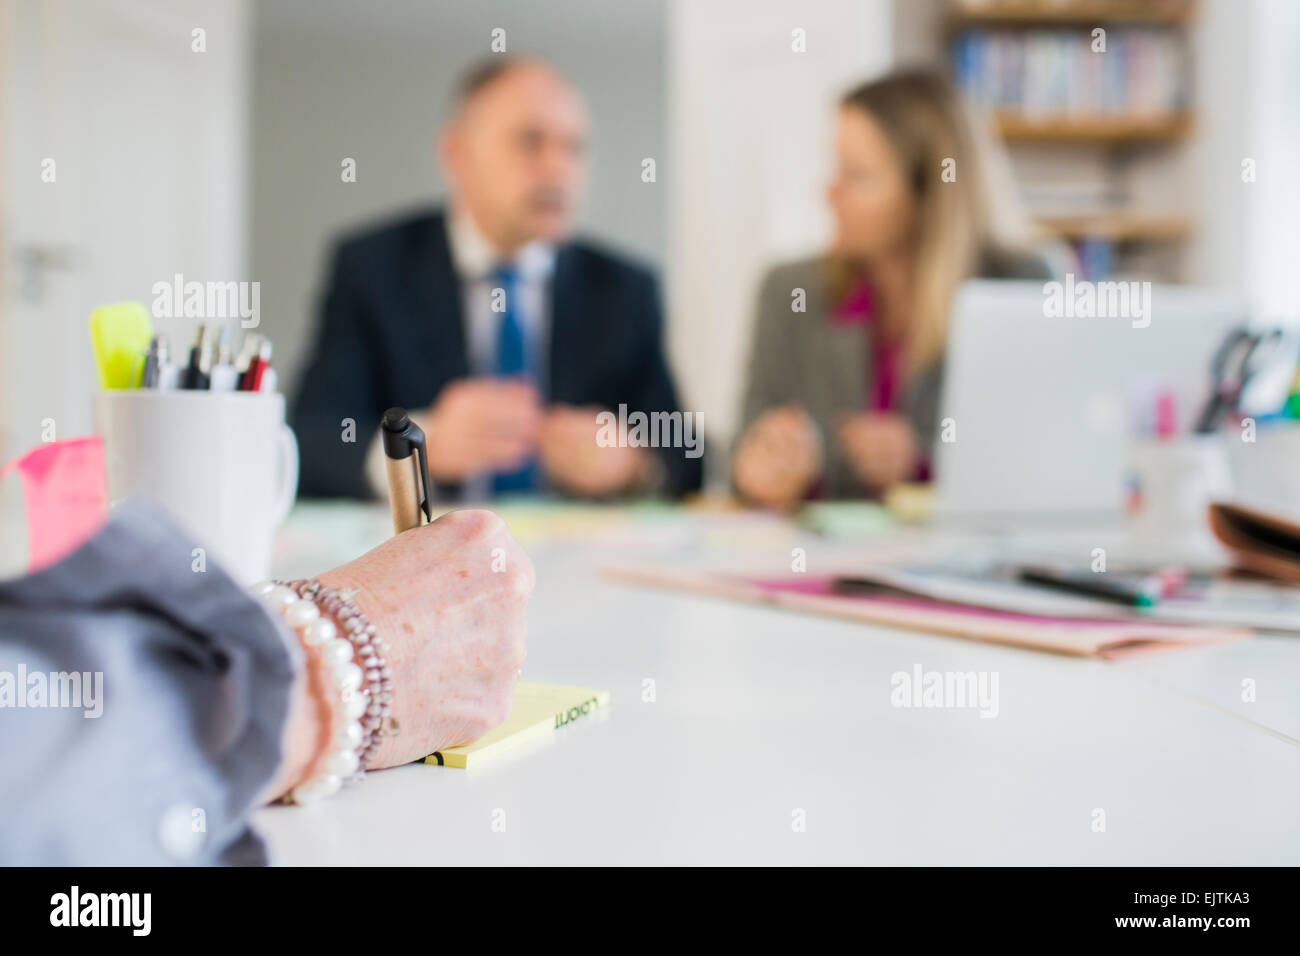 Cropped image of hand writing reminder in front of colleagues at office desk - Stock Image